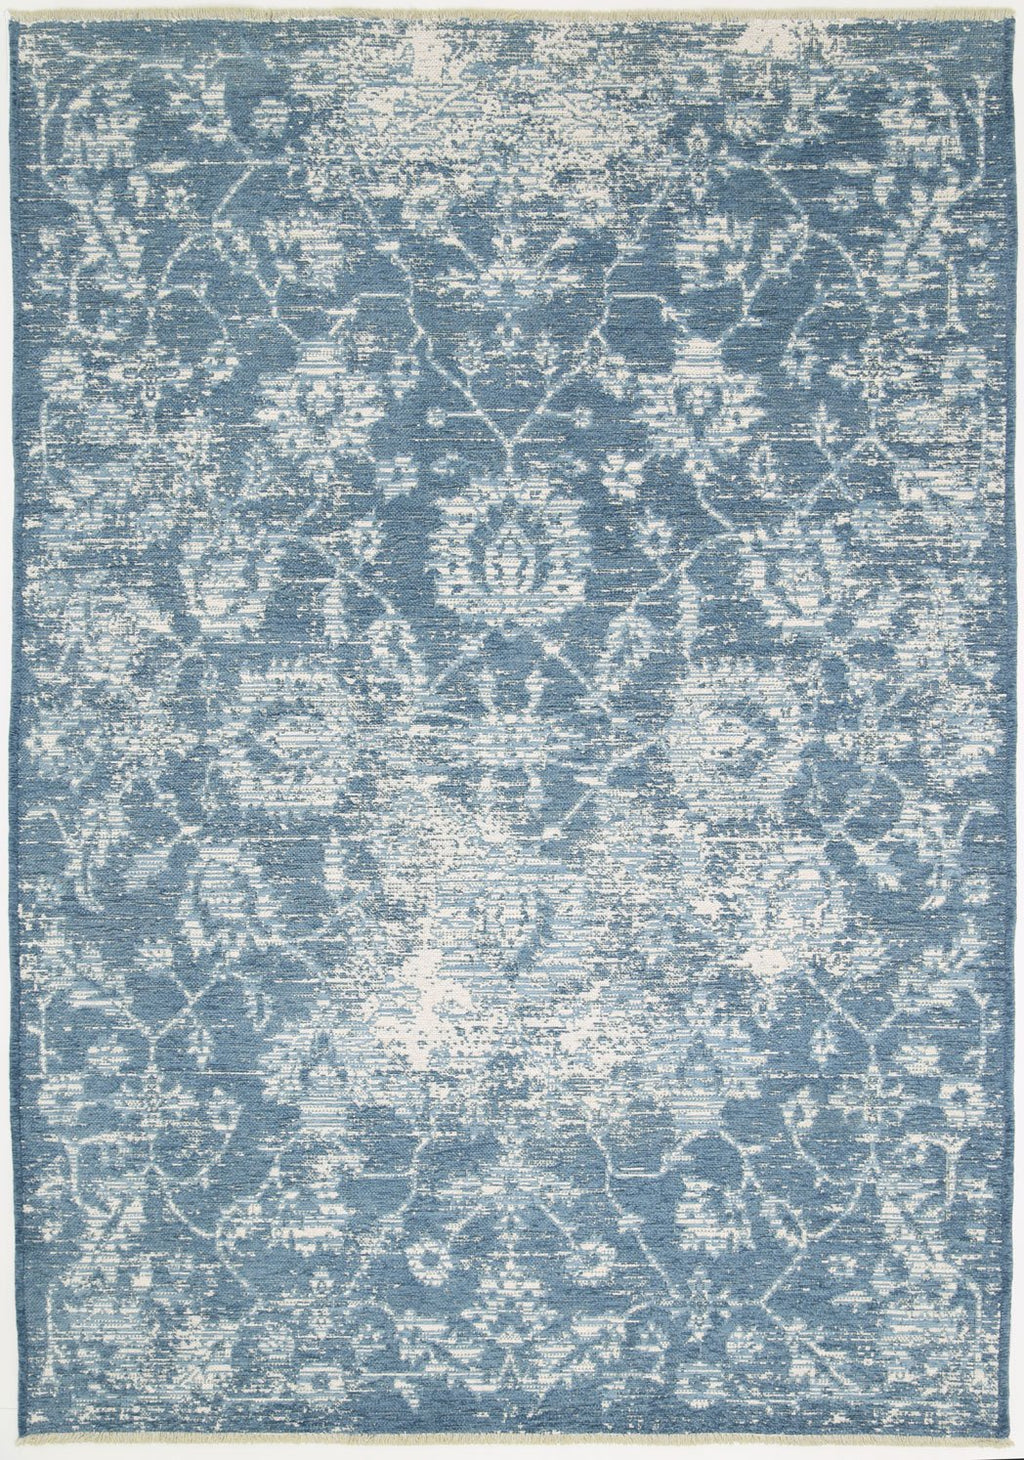 Rusty Vintage Classic, Amazing 2 in 1 Reversible Rug Blue